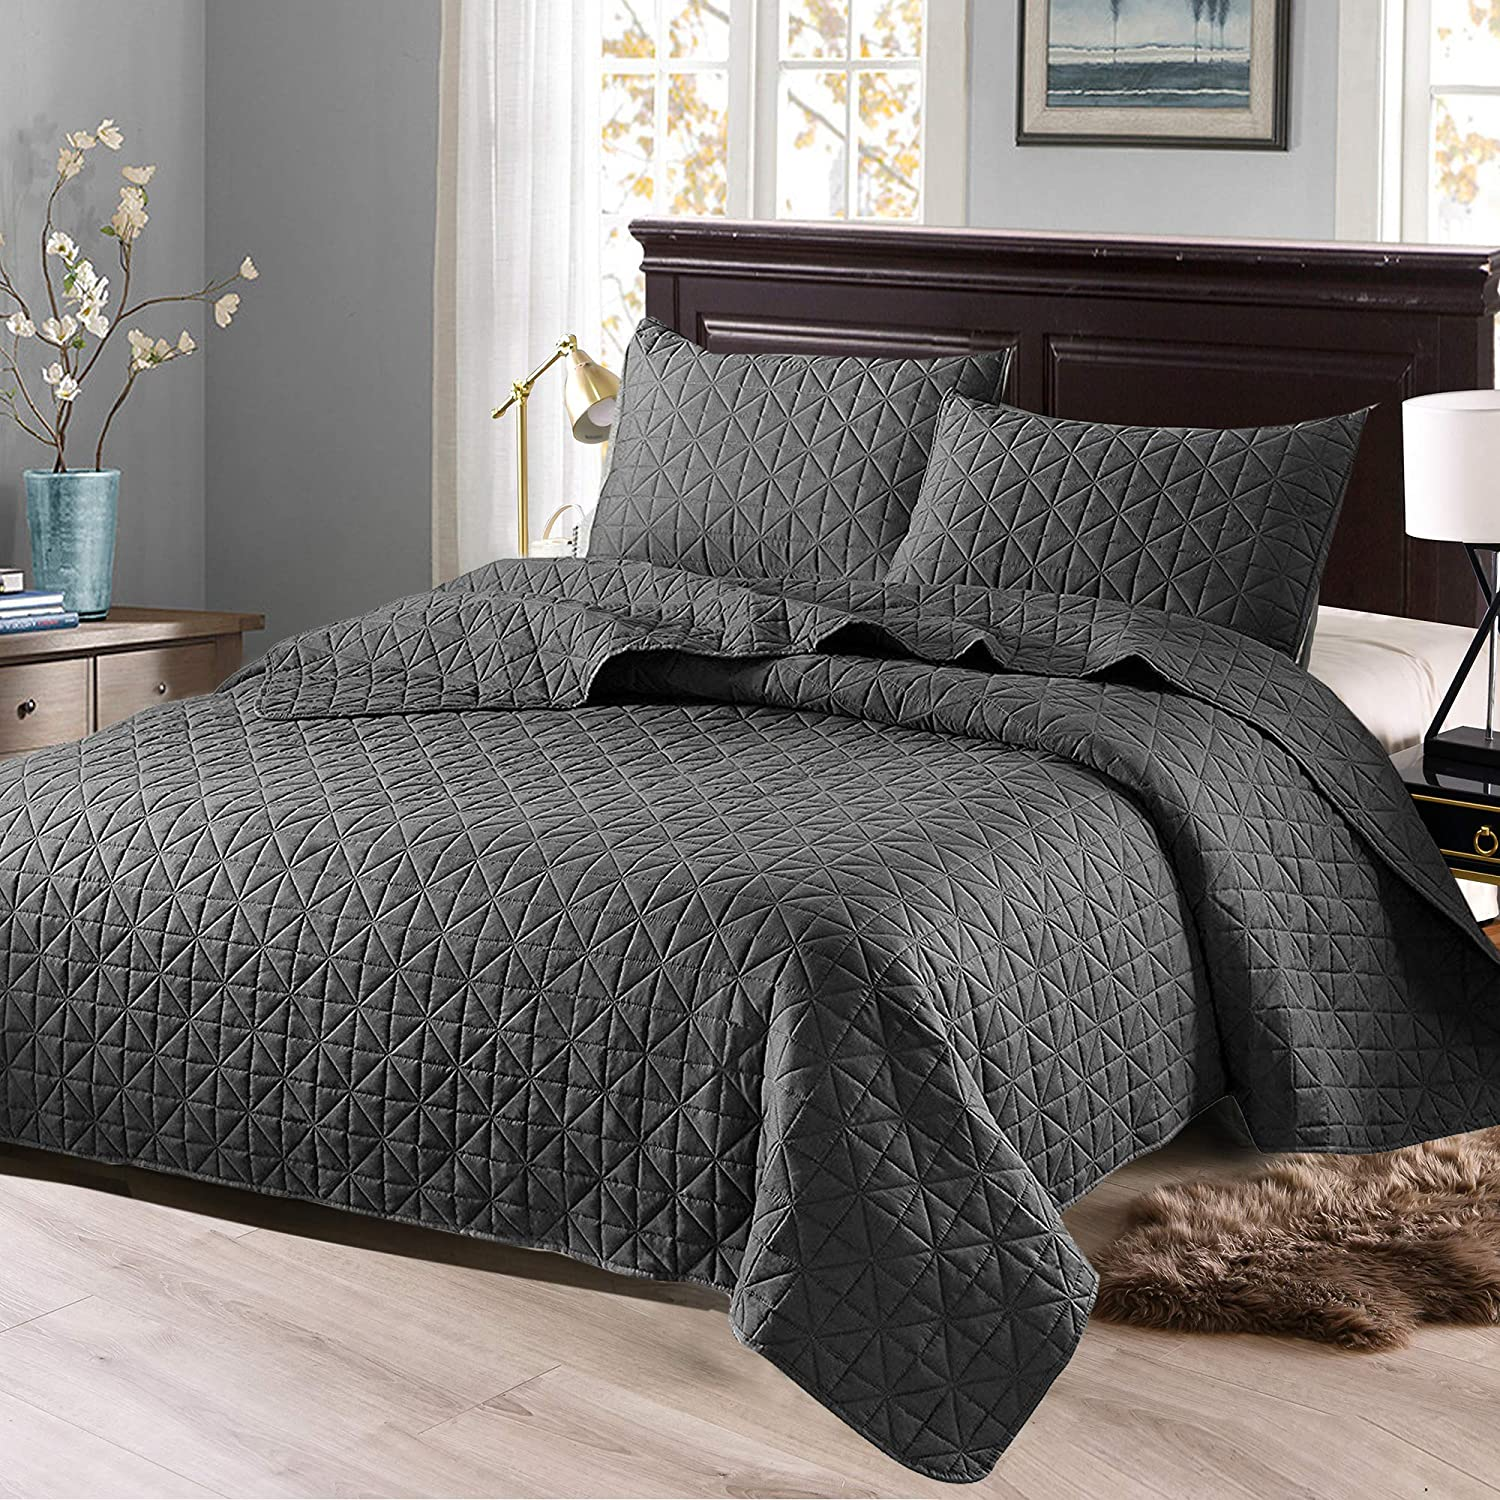 Amazon.com: Exclusivo Mezcla 3 Piece King Size Quilt Set with